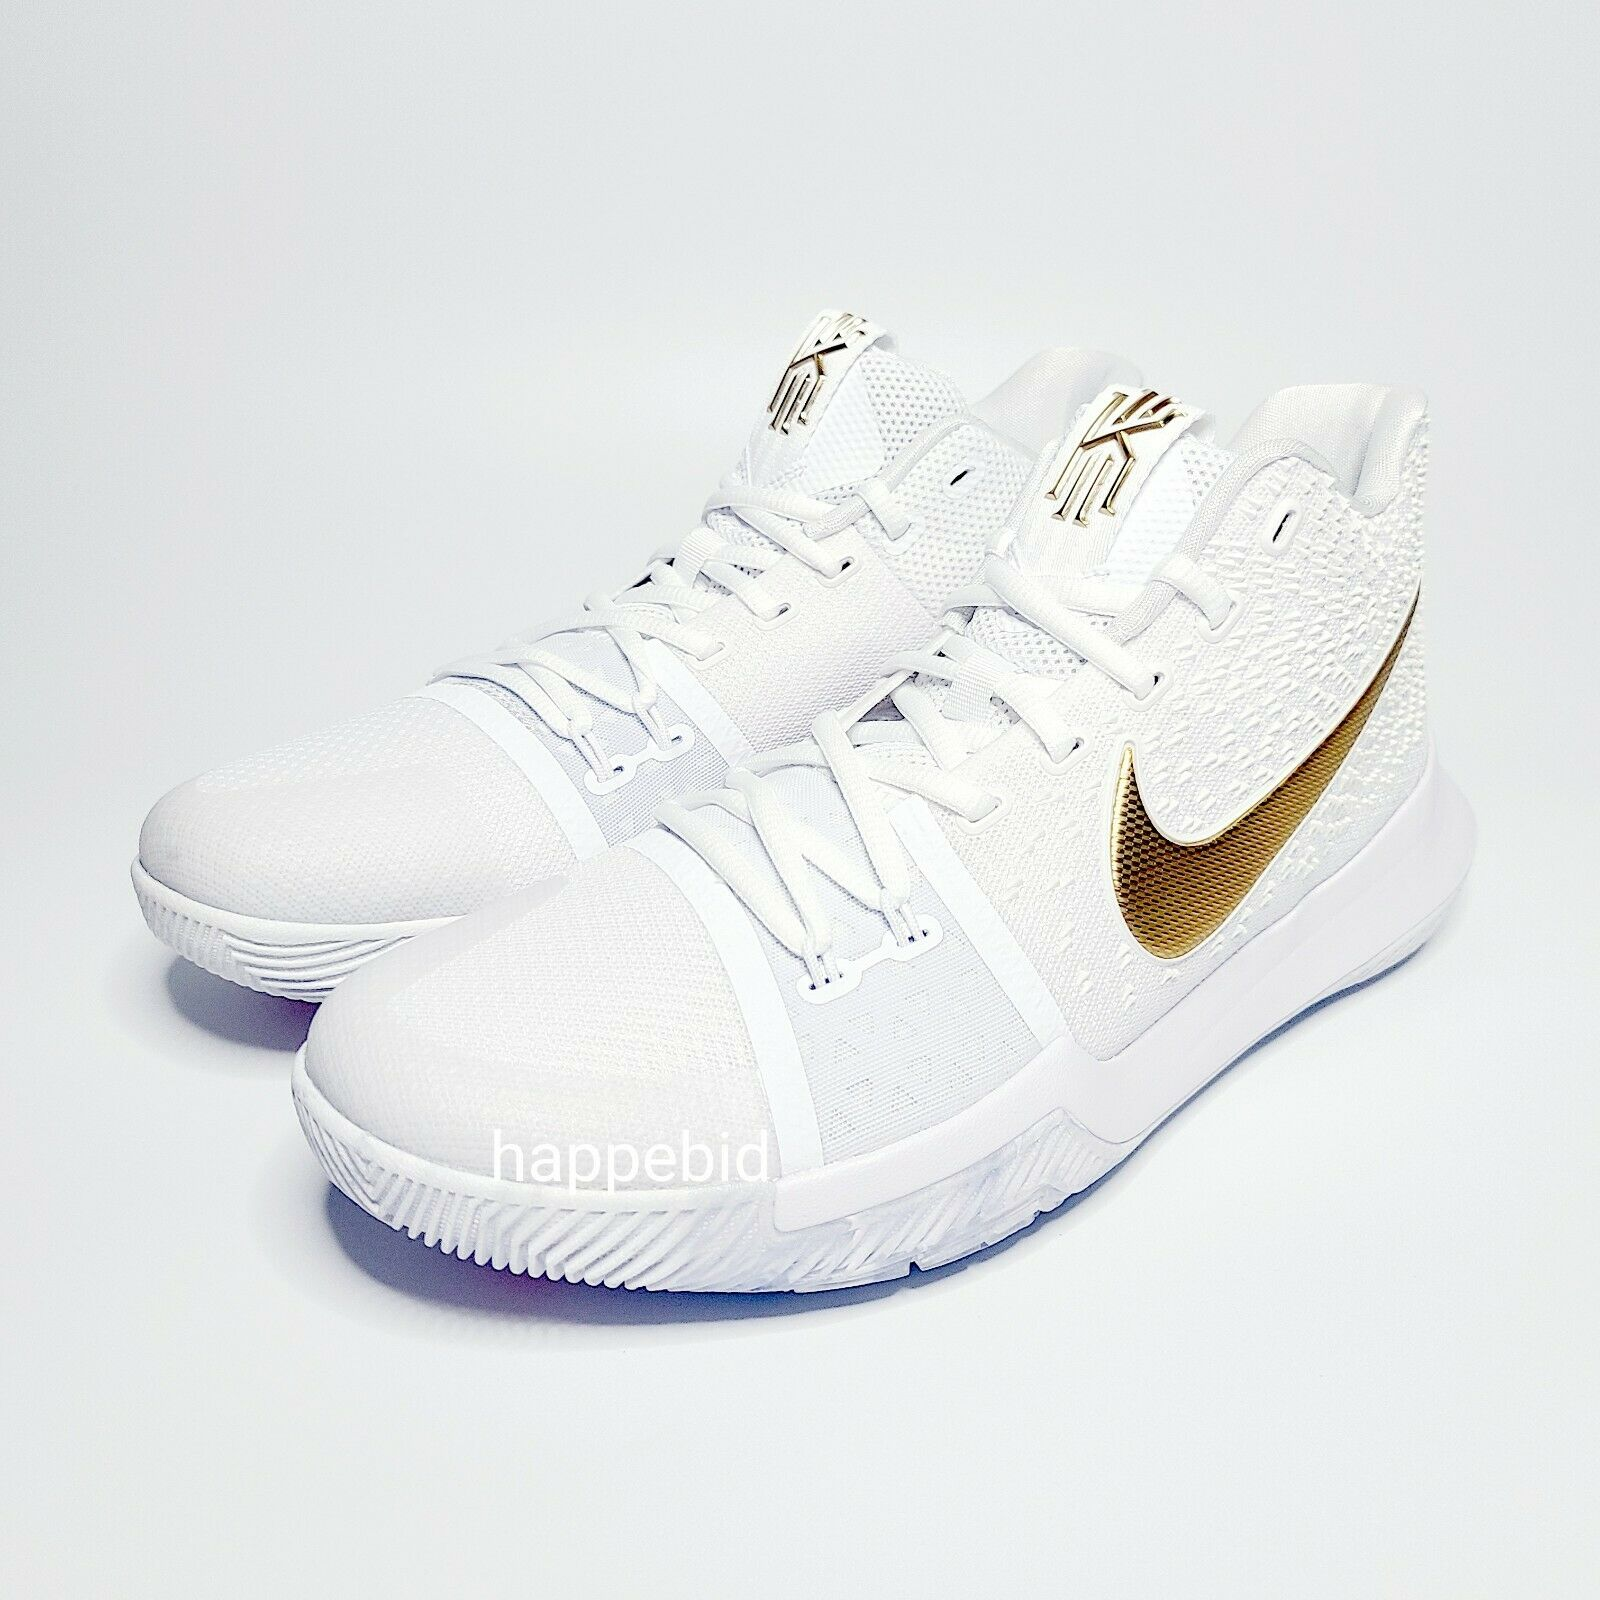 BRAND NEW Nike Kyrie 3 Finals White